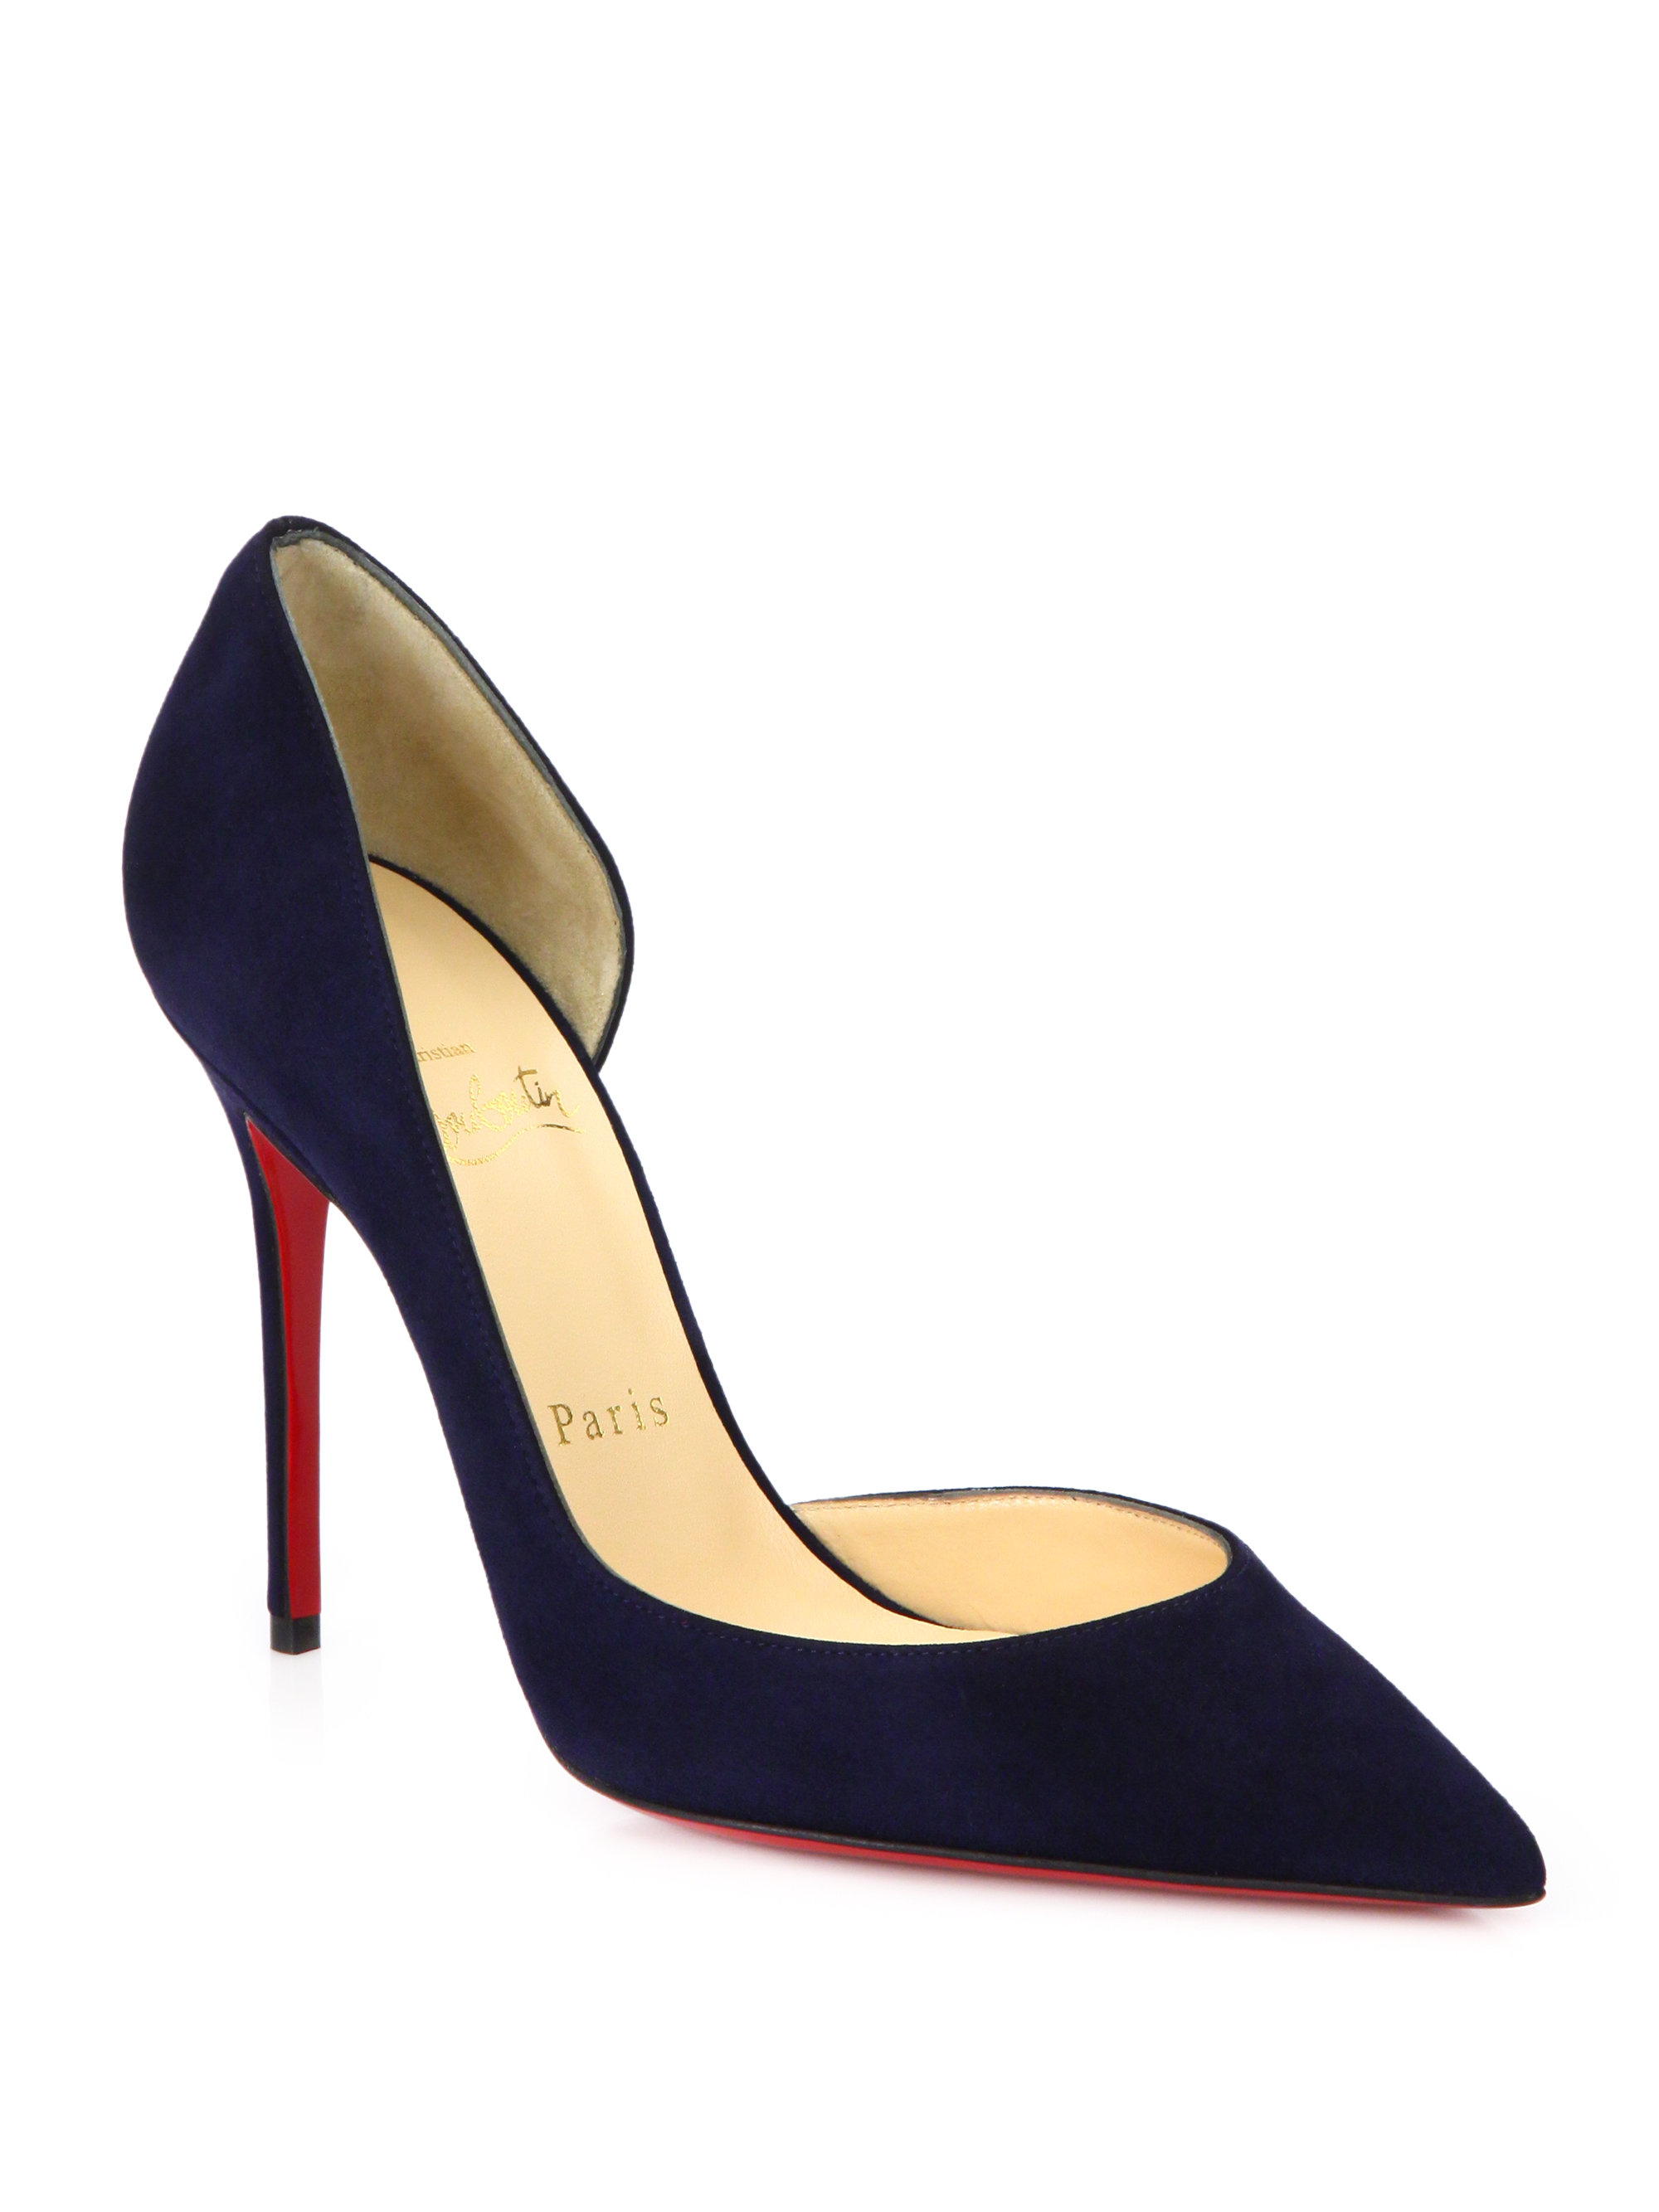 christian louboutin men online store - Artesur ? christian louboutin pointed-toe pumps Navy blue suede